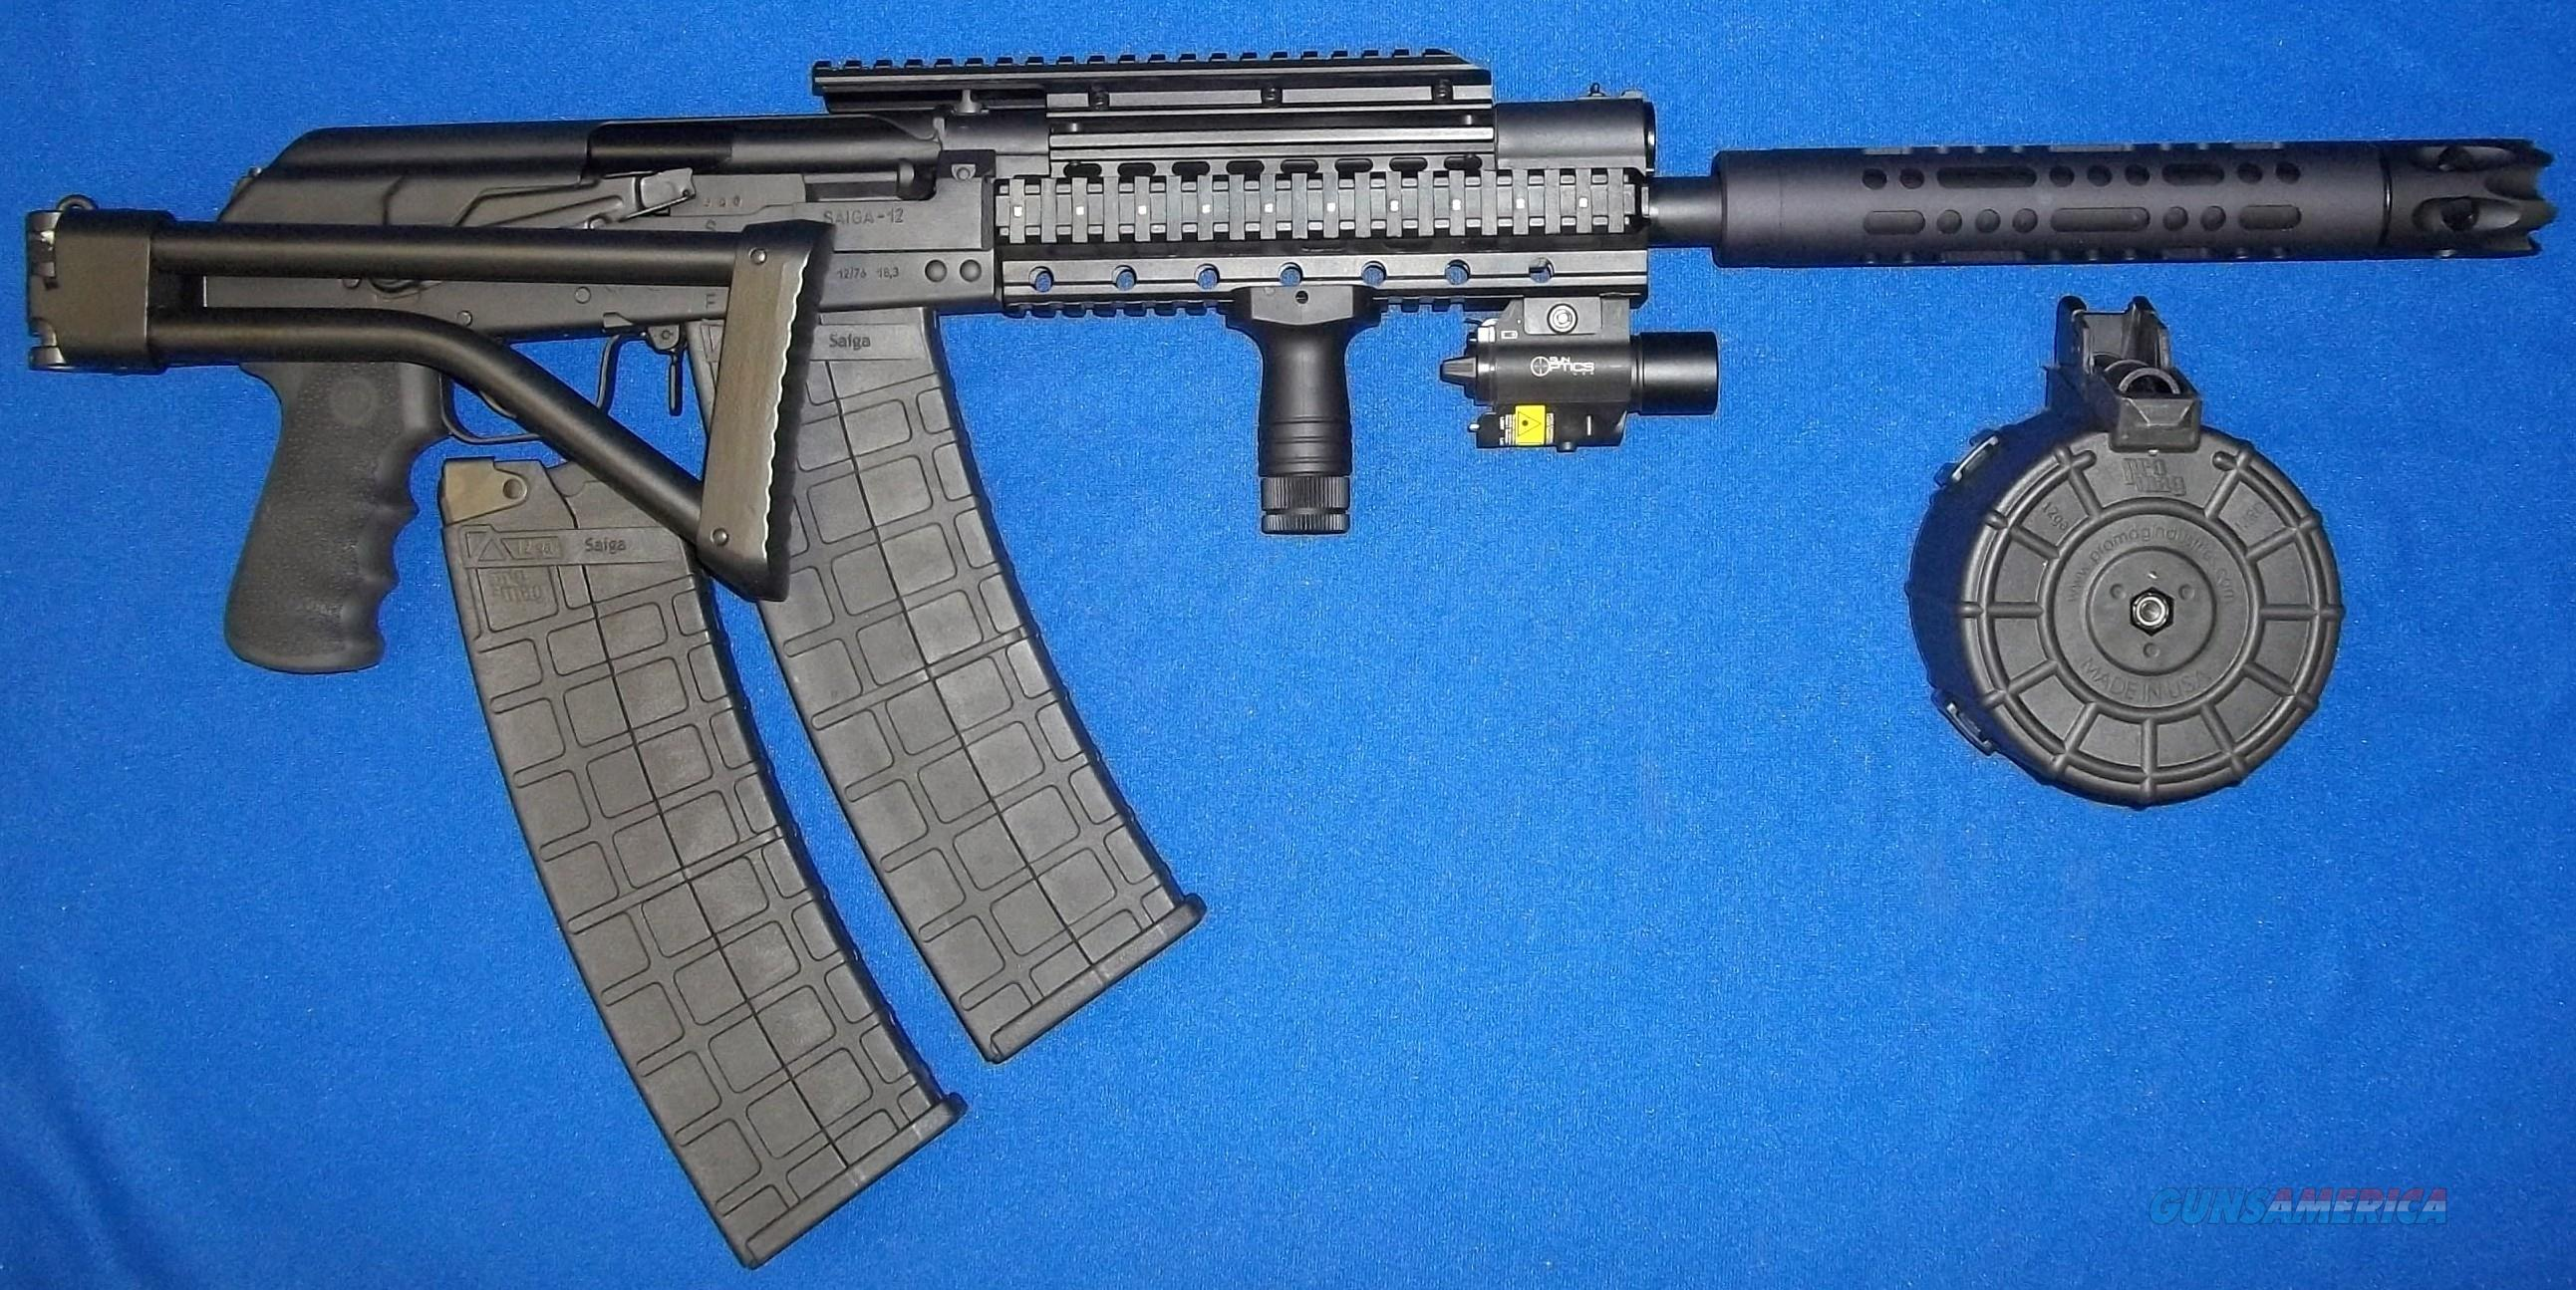 SAIGA 12 RUSSIAN AK47 SIDE FOLDER! GALIL SYTLE SIDE FOLDING STOCK+BARREL  SHROUD WITH TACTICAL MUZZLE BREAK+250 LUMEN LED LIGHT & RED LASER